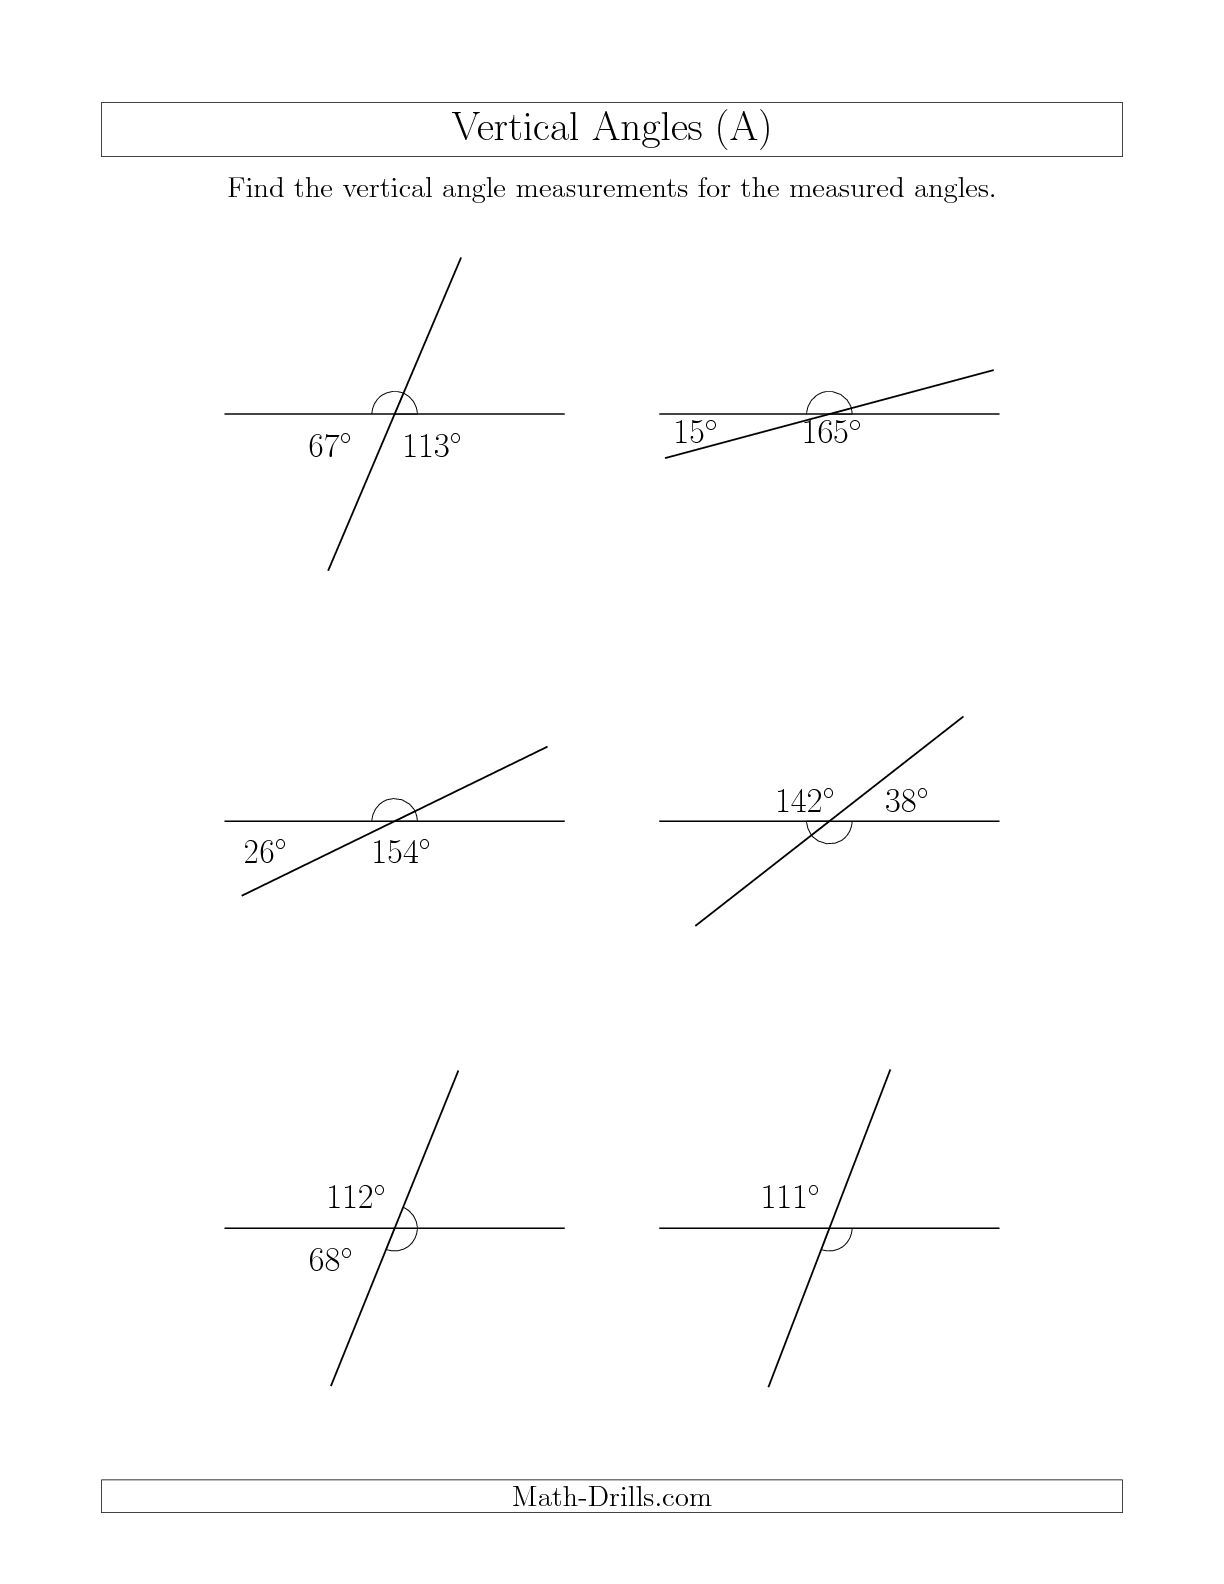 small resolution of The Vertical Angle Relationships (A) math worksheet from the Geometry  Worksheets page at Math-Drills.com.   Angles worksheet